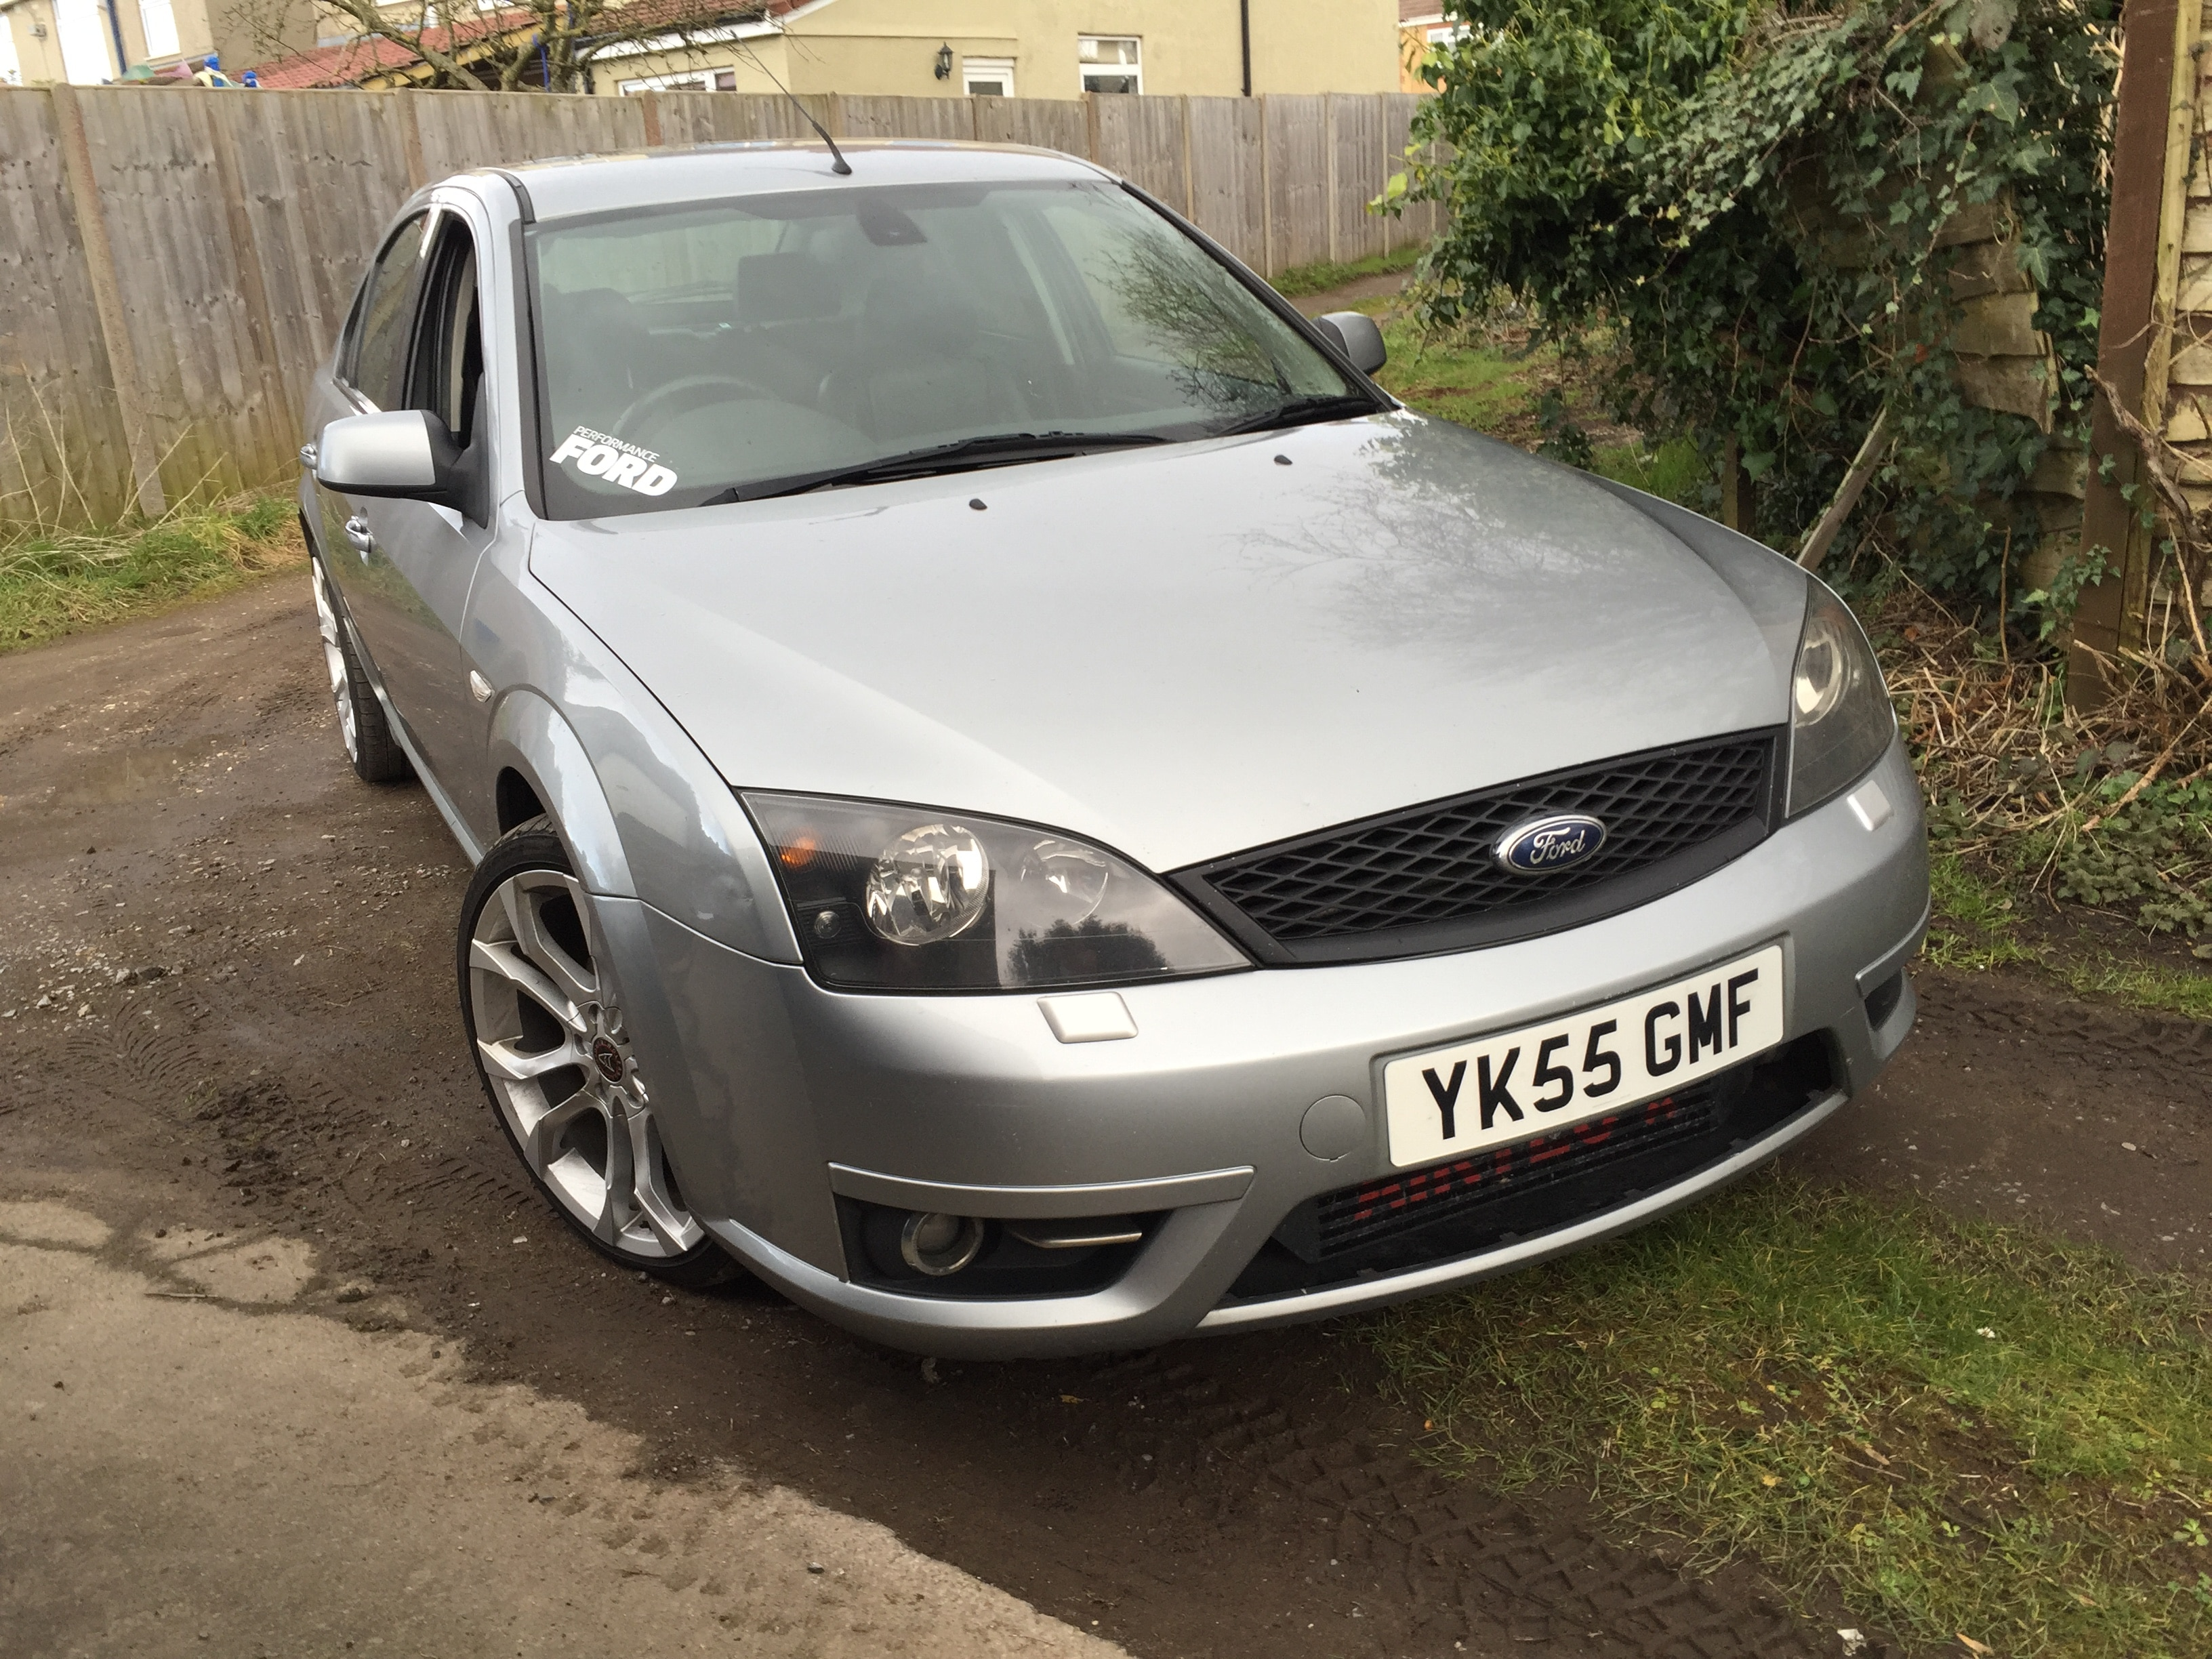 Ford Mondeo, Ford, Mondeo, Mondeo Man, rep car, Ford Sierra, Vauxhall Cavalier, saloon car, family car, classic car, retro car, motoring, automotive, ST220, ST24, ST TDCi, ebay, ebay motors, autotrader, car, cars, not2grand, www.not2grand.co.uk, Adrian Flux